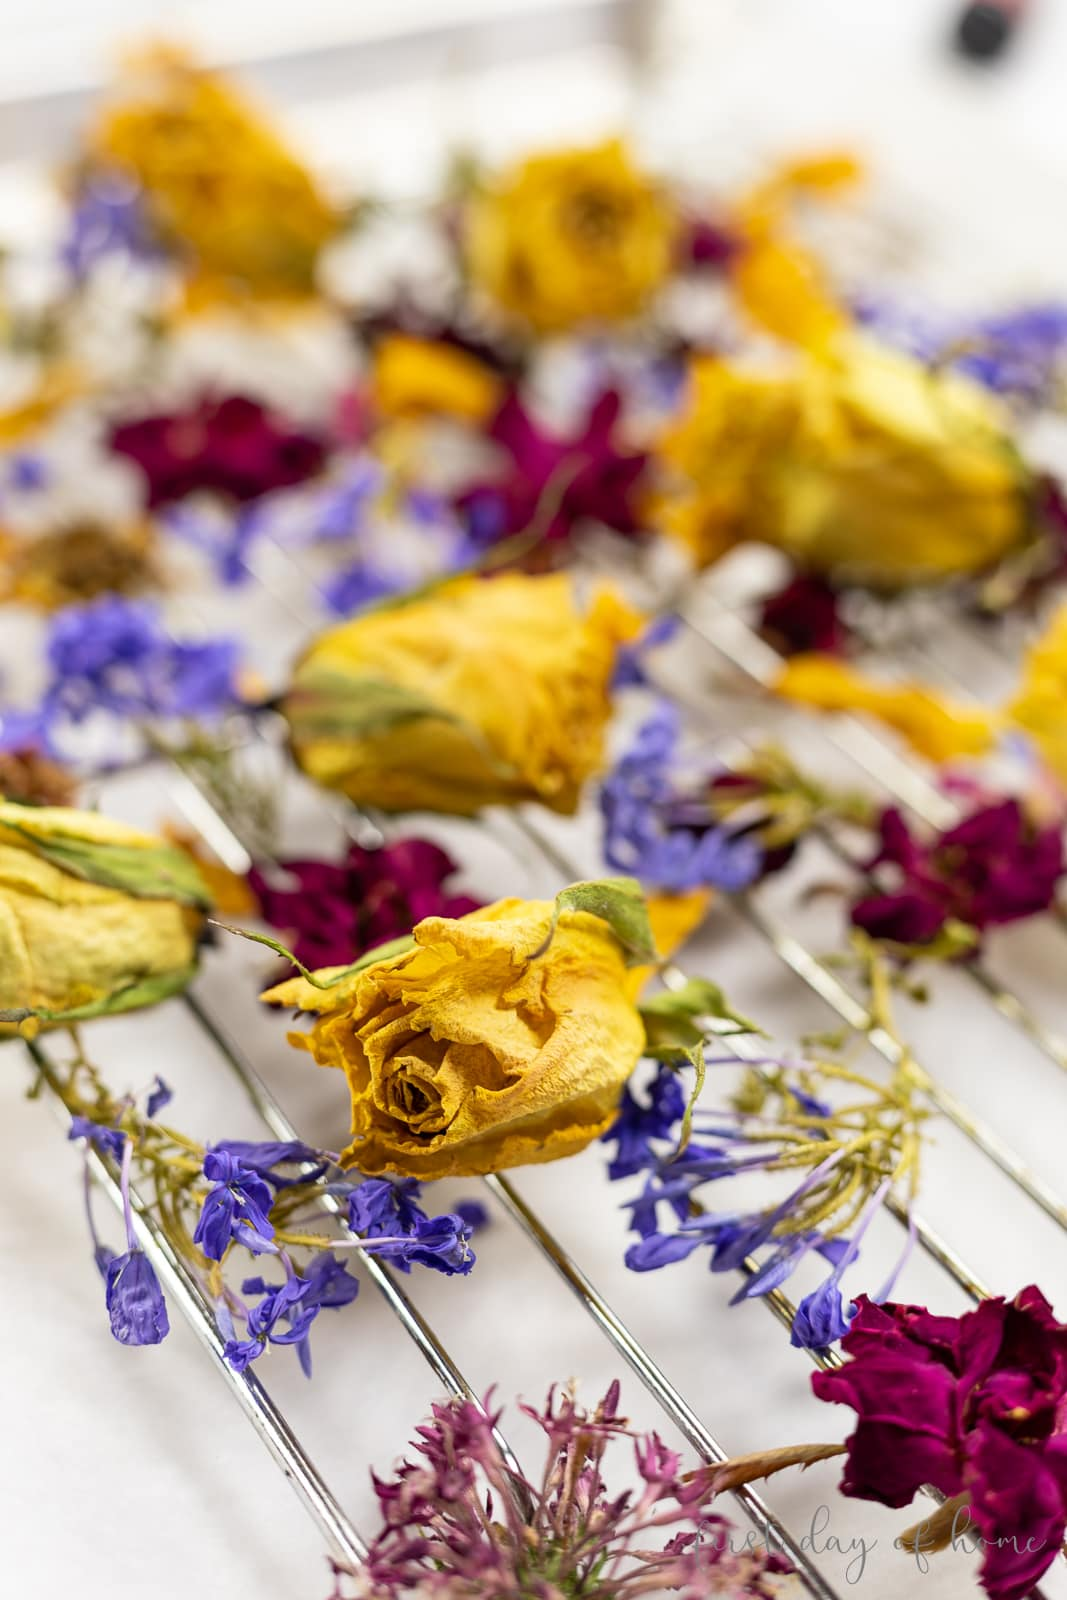 Dried flowers on cooling rack